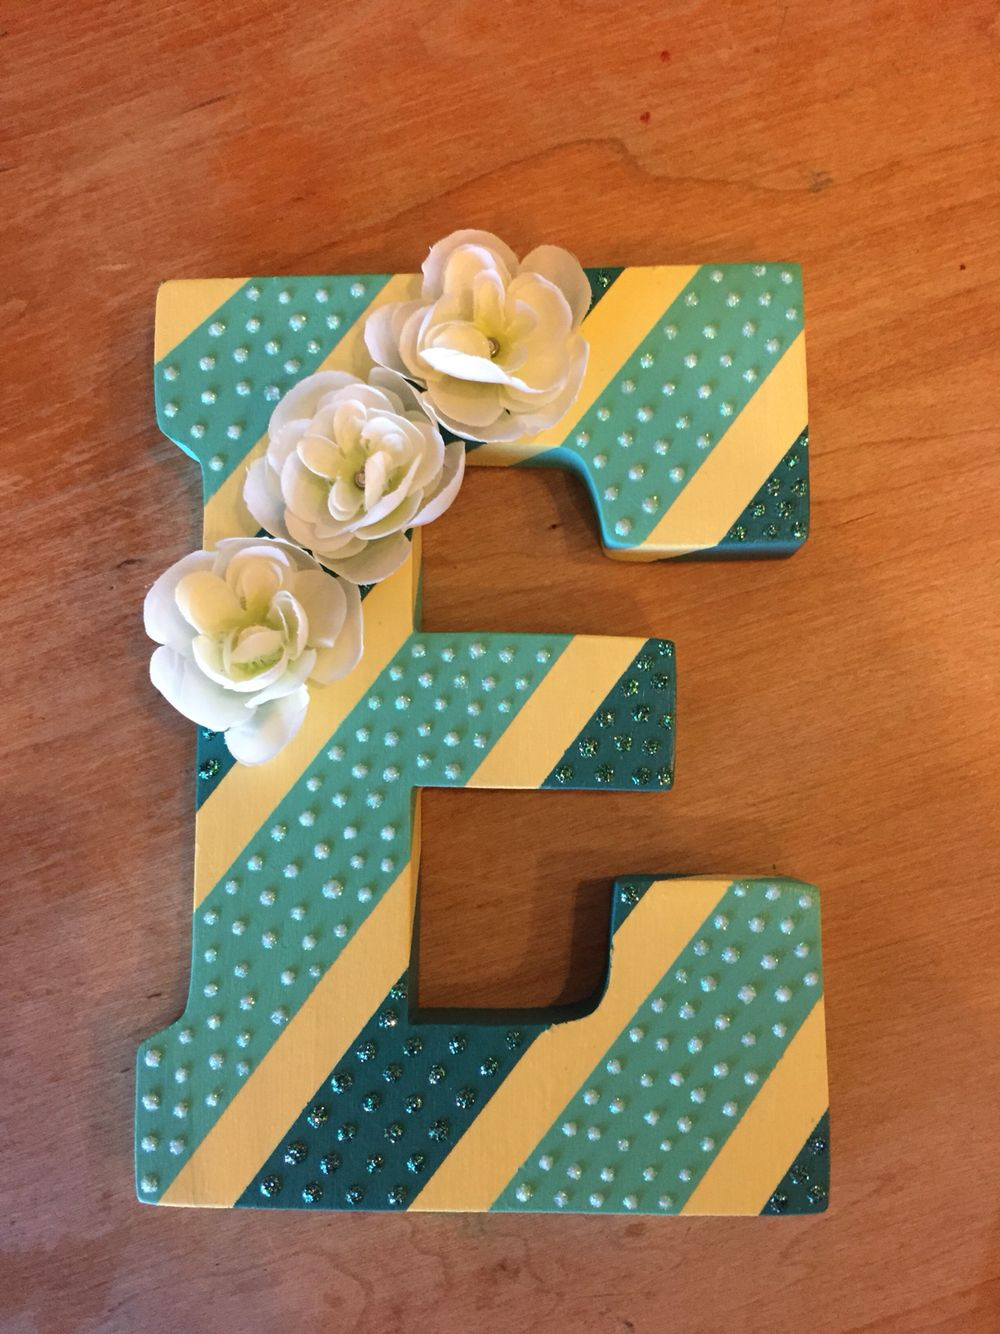 diy wall art painted wooden letter with stripes glitter and flowers added for embellishment